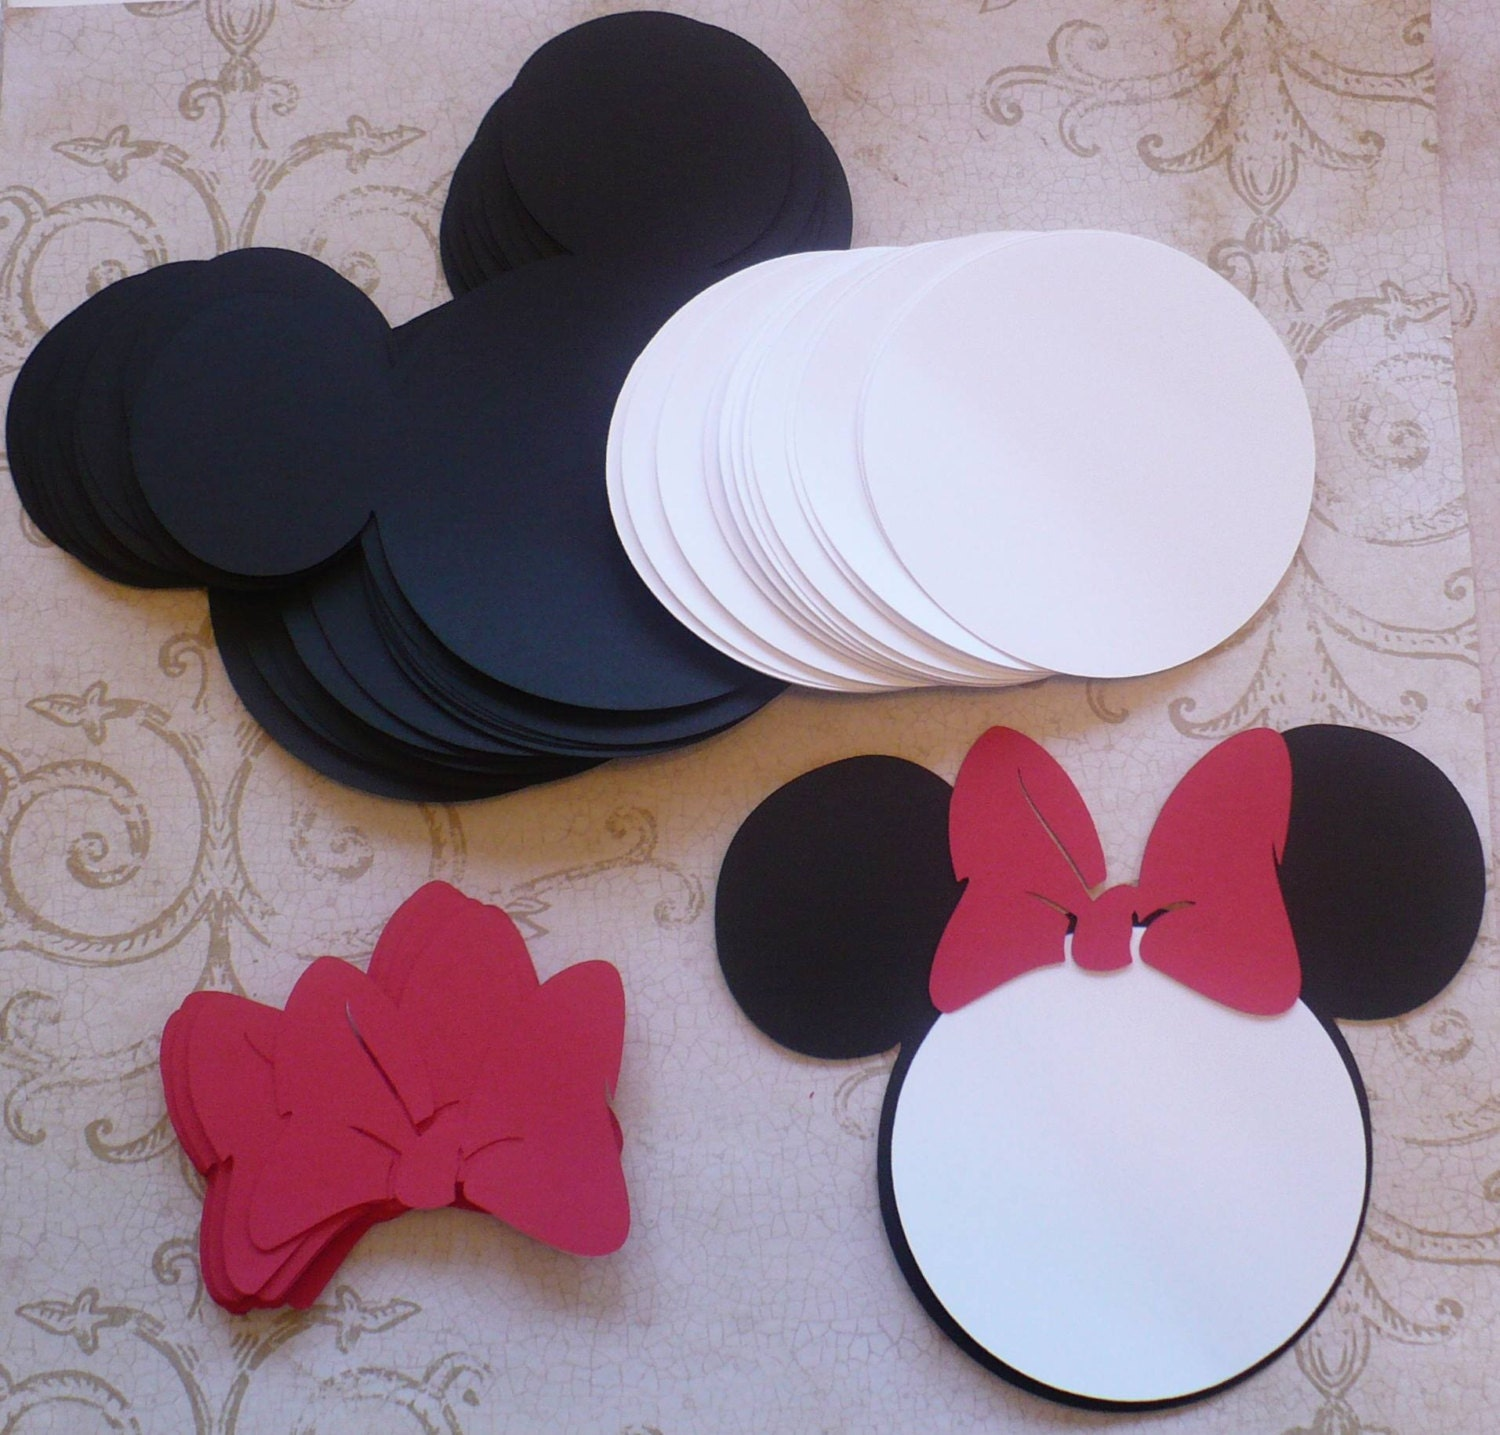 25 Black Minnie Mouse Head Shapes White Circle Shapes Red